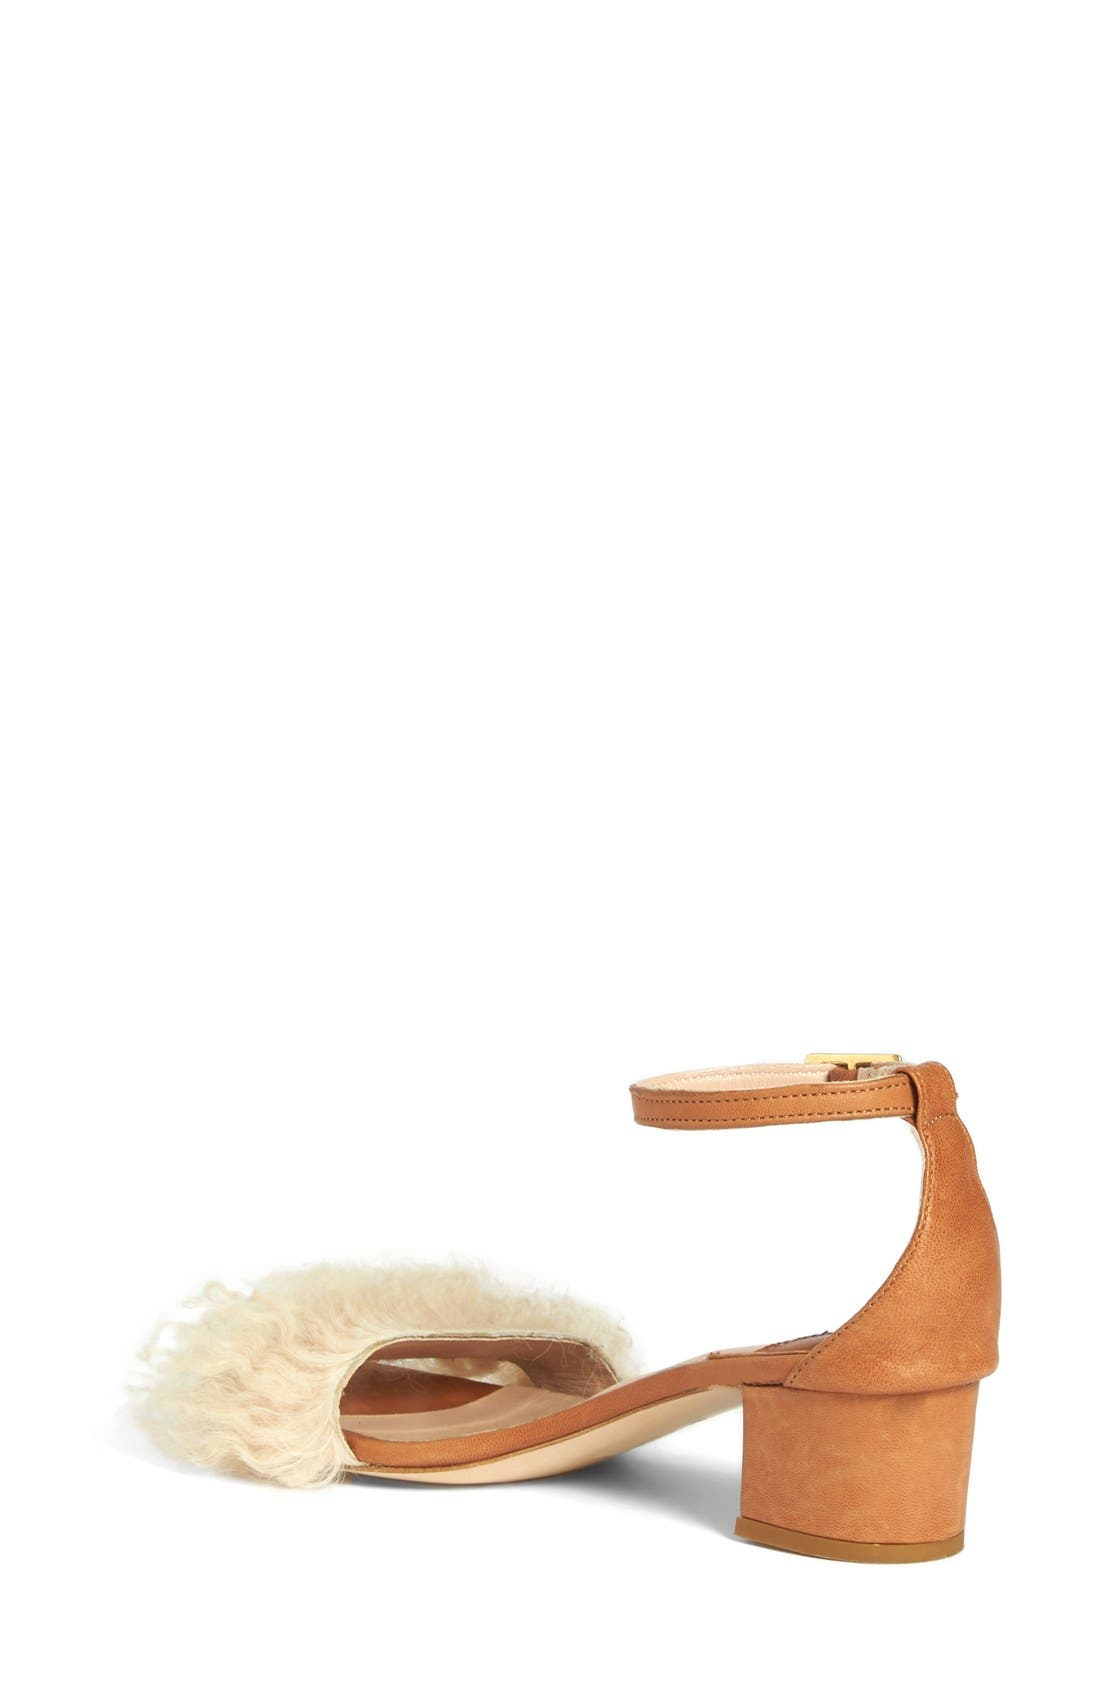 Tufted Dhara Genuine Shearling Ankle Strap Sandal,                             Alternate thumbnail 2, color,                             270